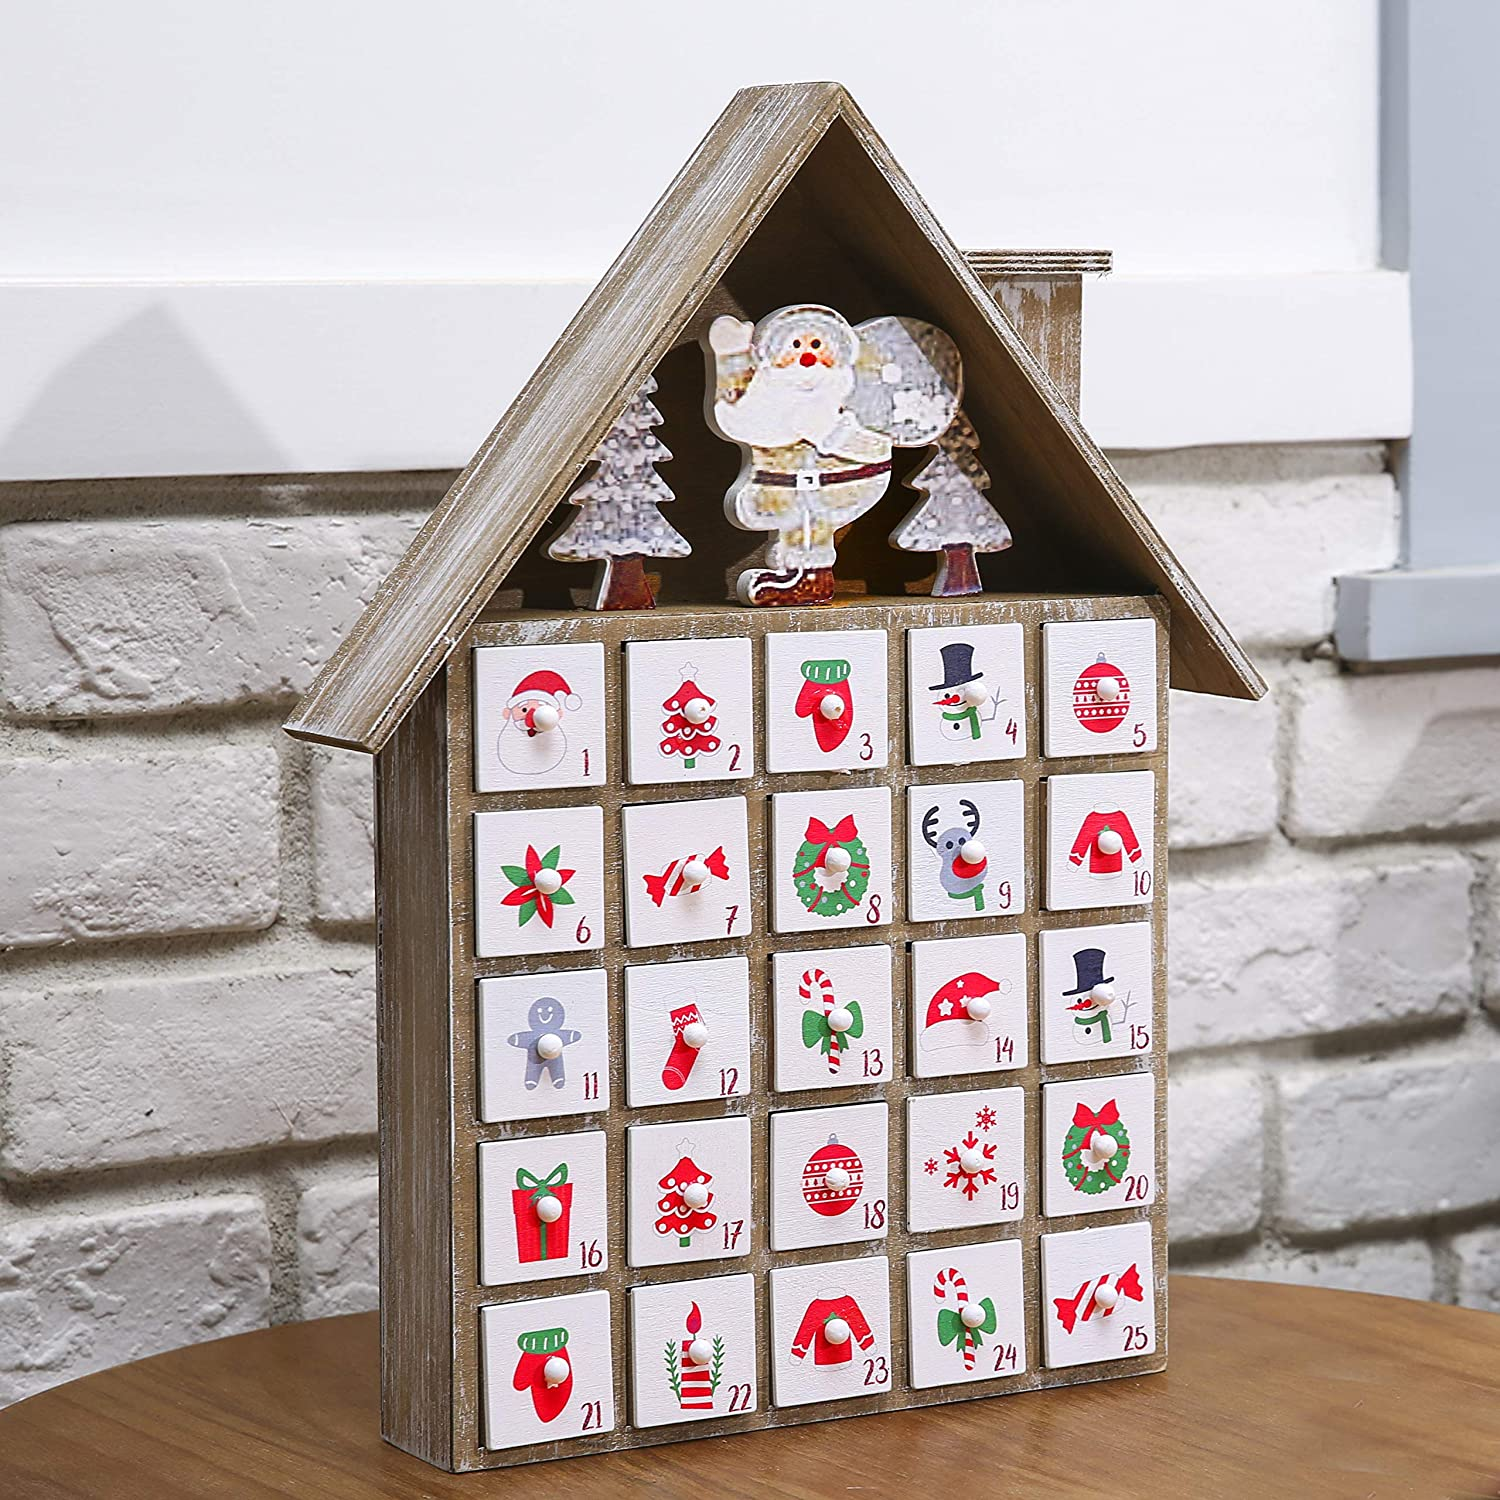 Mingle Fun Wooden Advent Calendar Christmas for Kids, Traditional Christmas Countdown Calendar Decoration with 25 Drawers, Unique Holiday Decoration, House, Tree, Santa, Snowman AMZ Tool